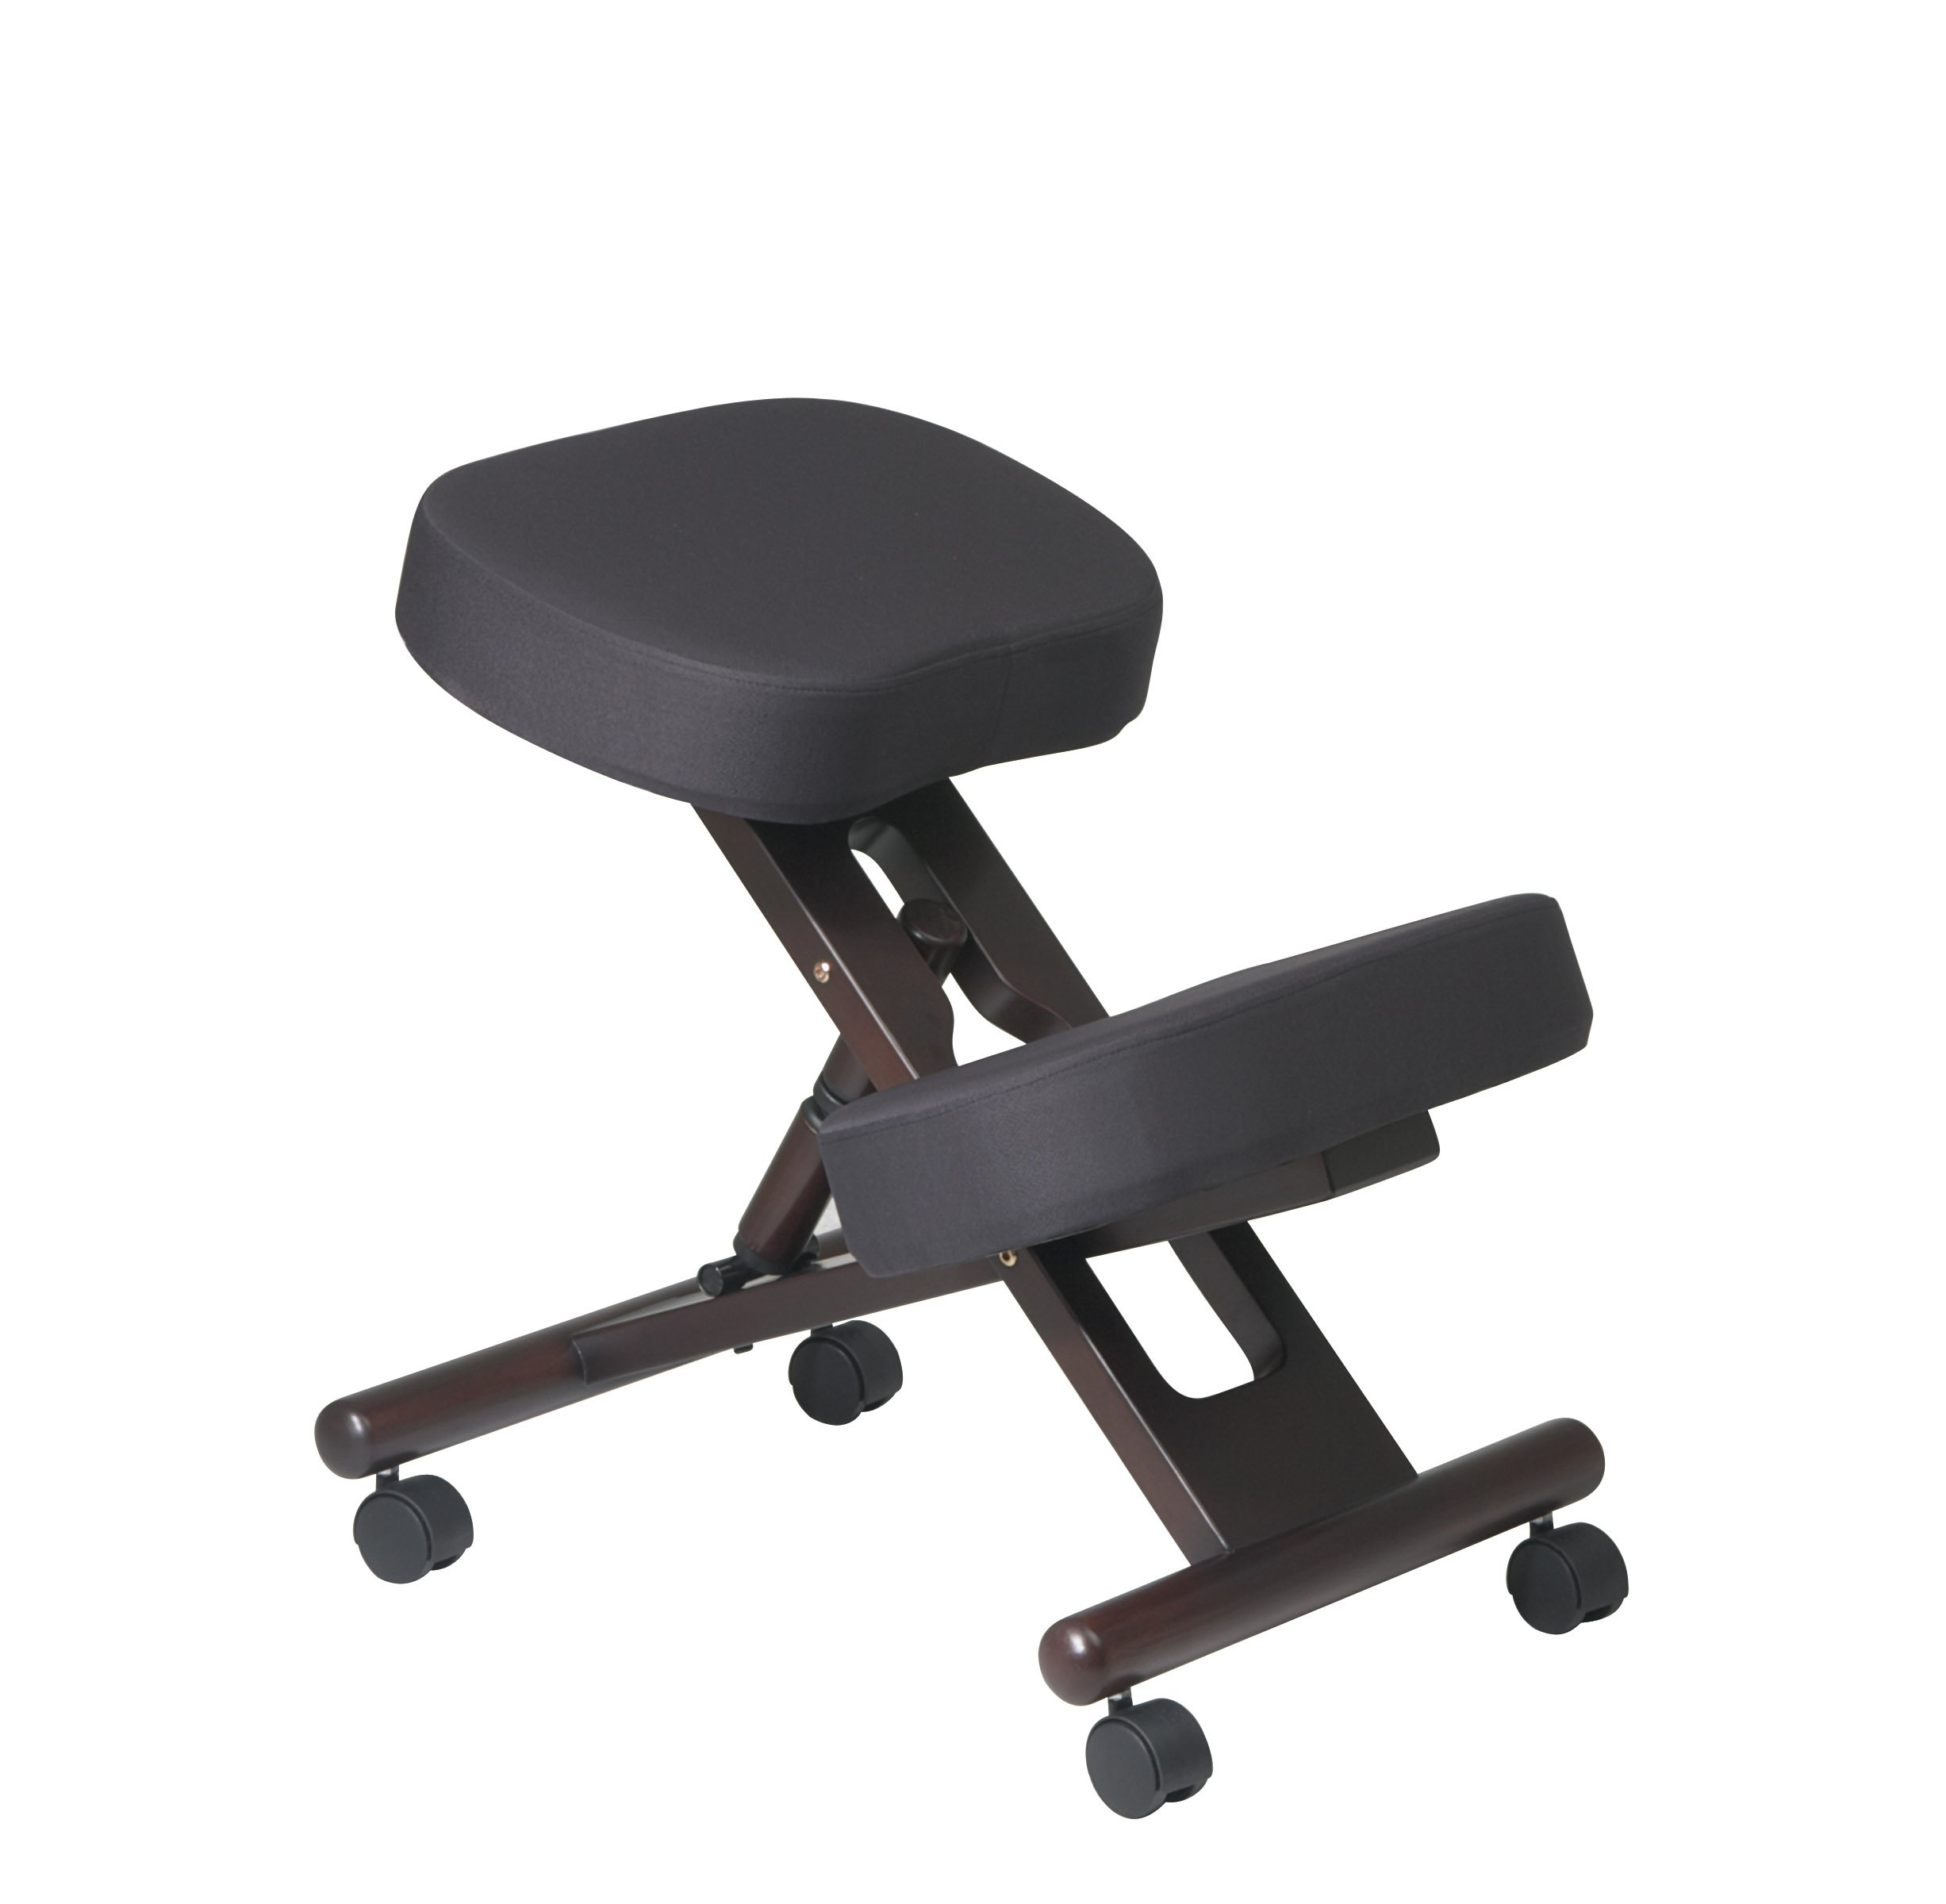 Ergonomic Knee Chair with Memory Foam Color: Espresso by Office Star